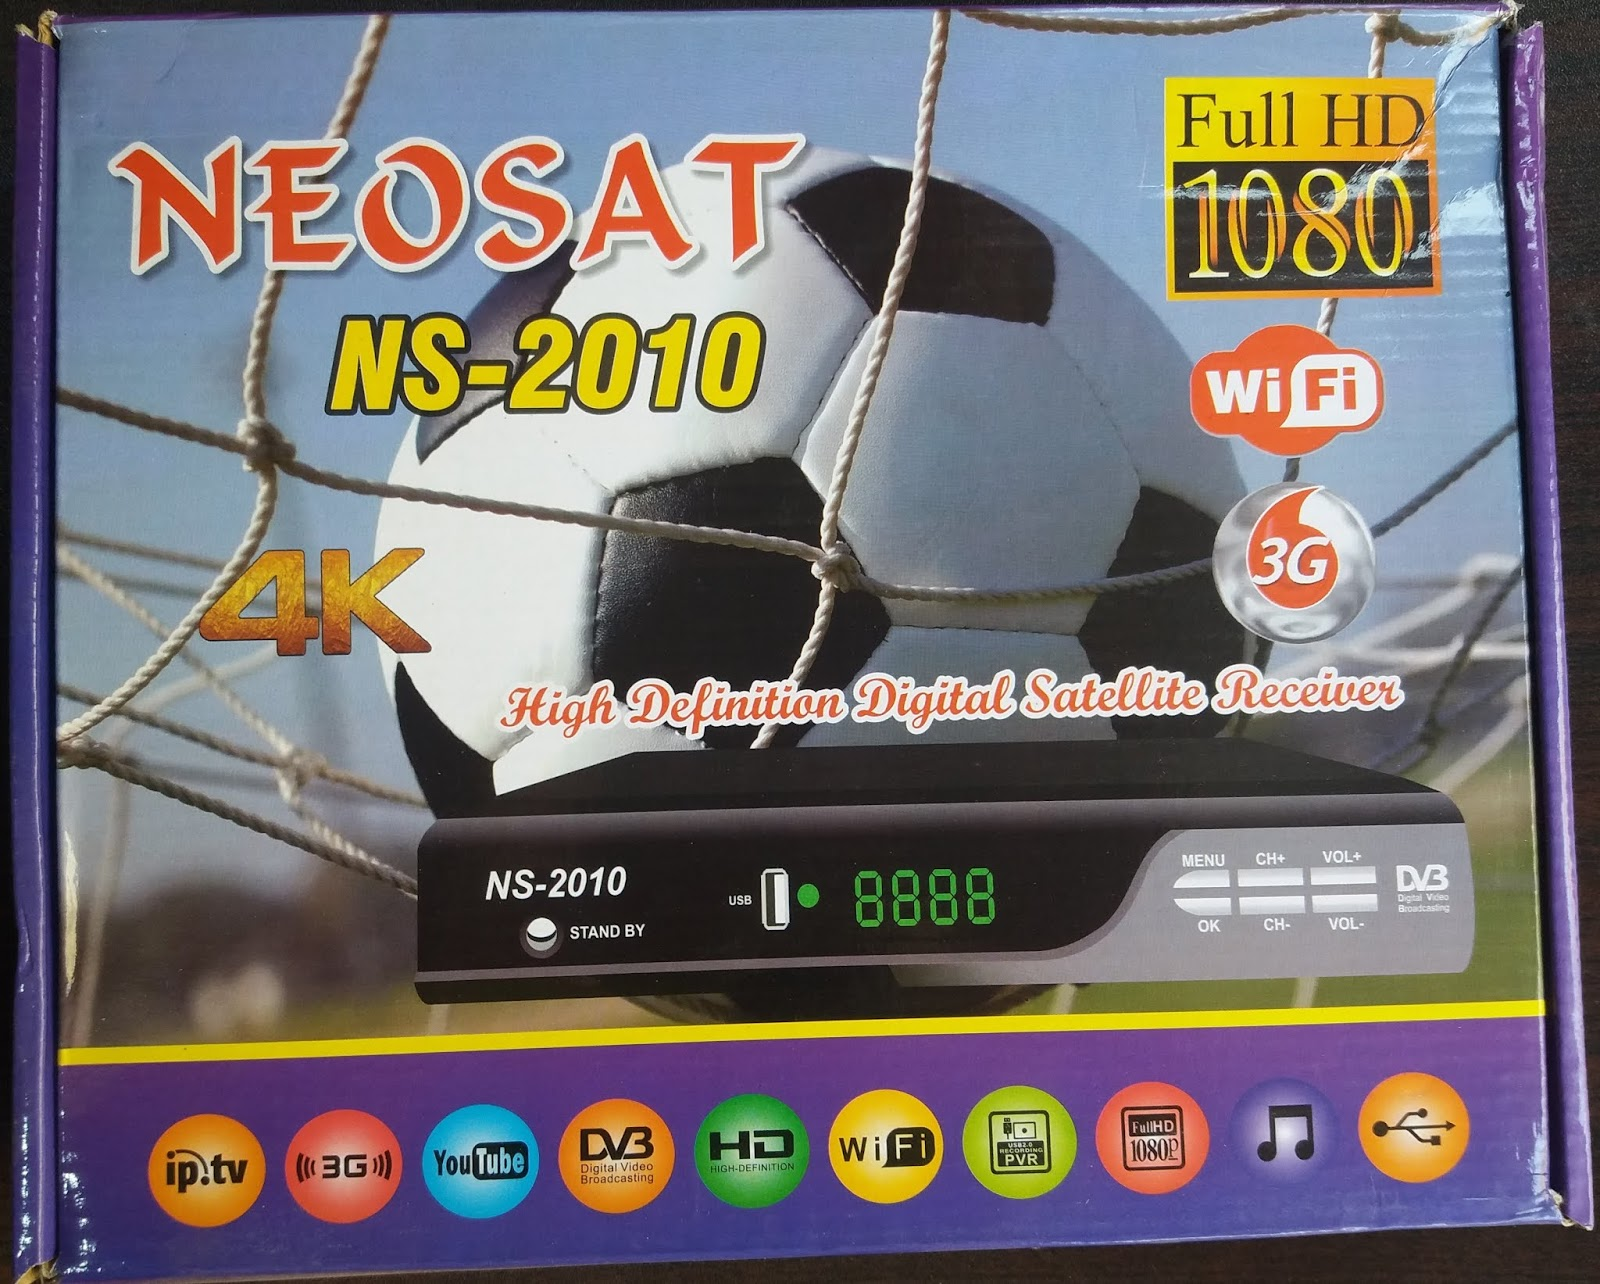 All Dish Receiver Software: NEOSAT NS-2010 HD RECEIVER AUTO